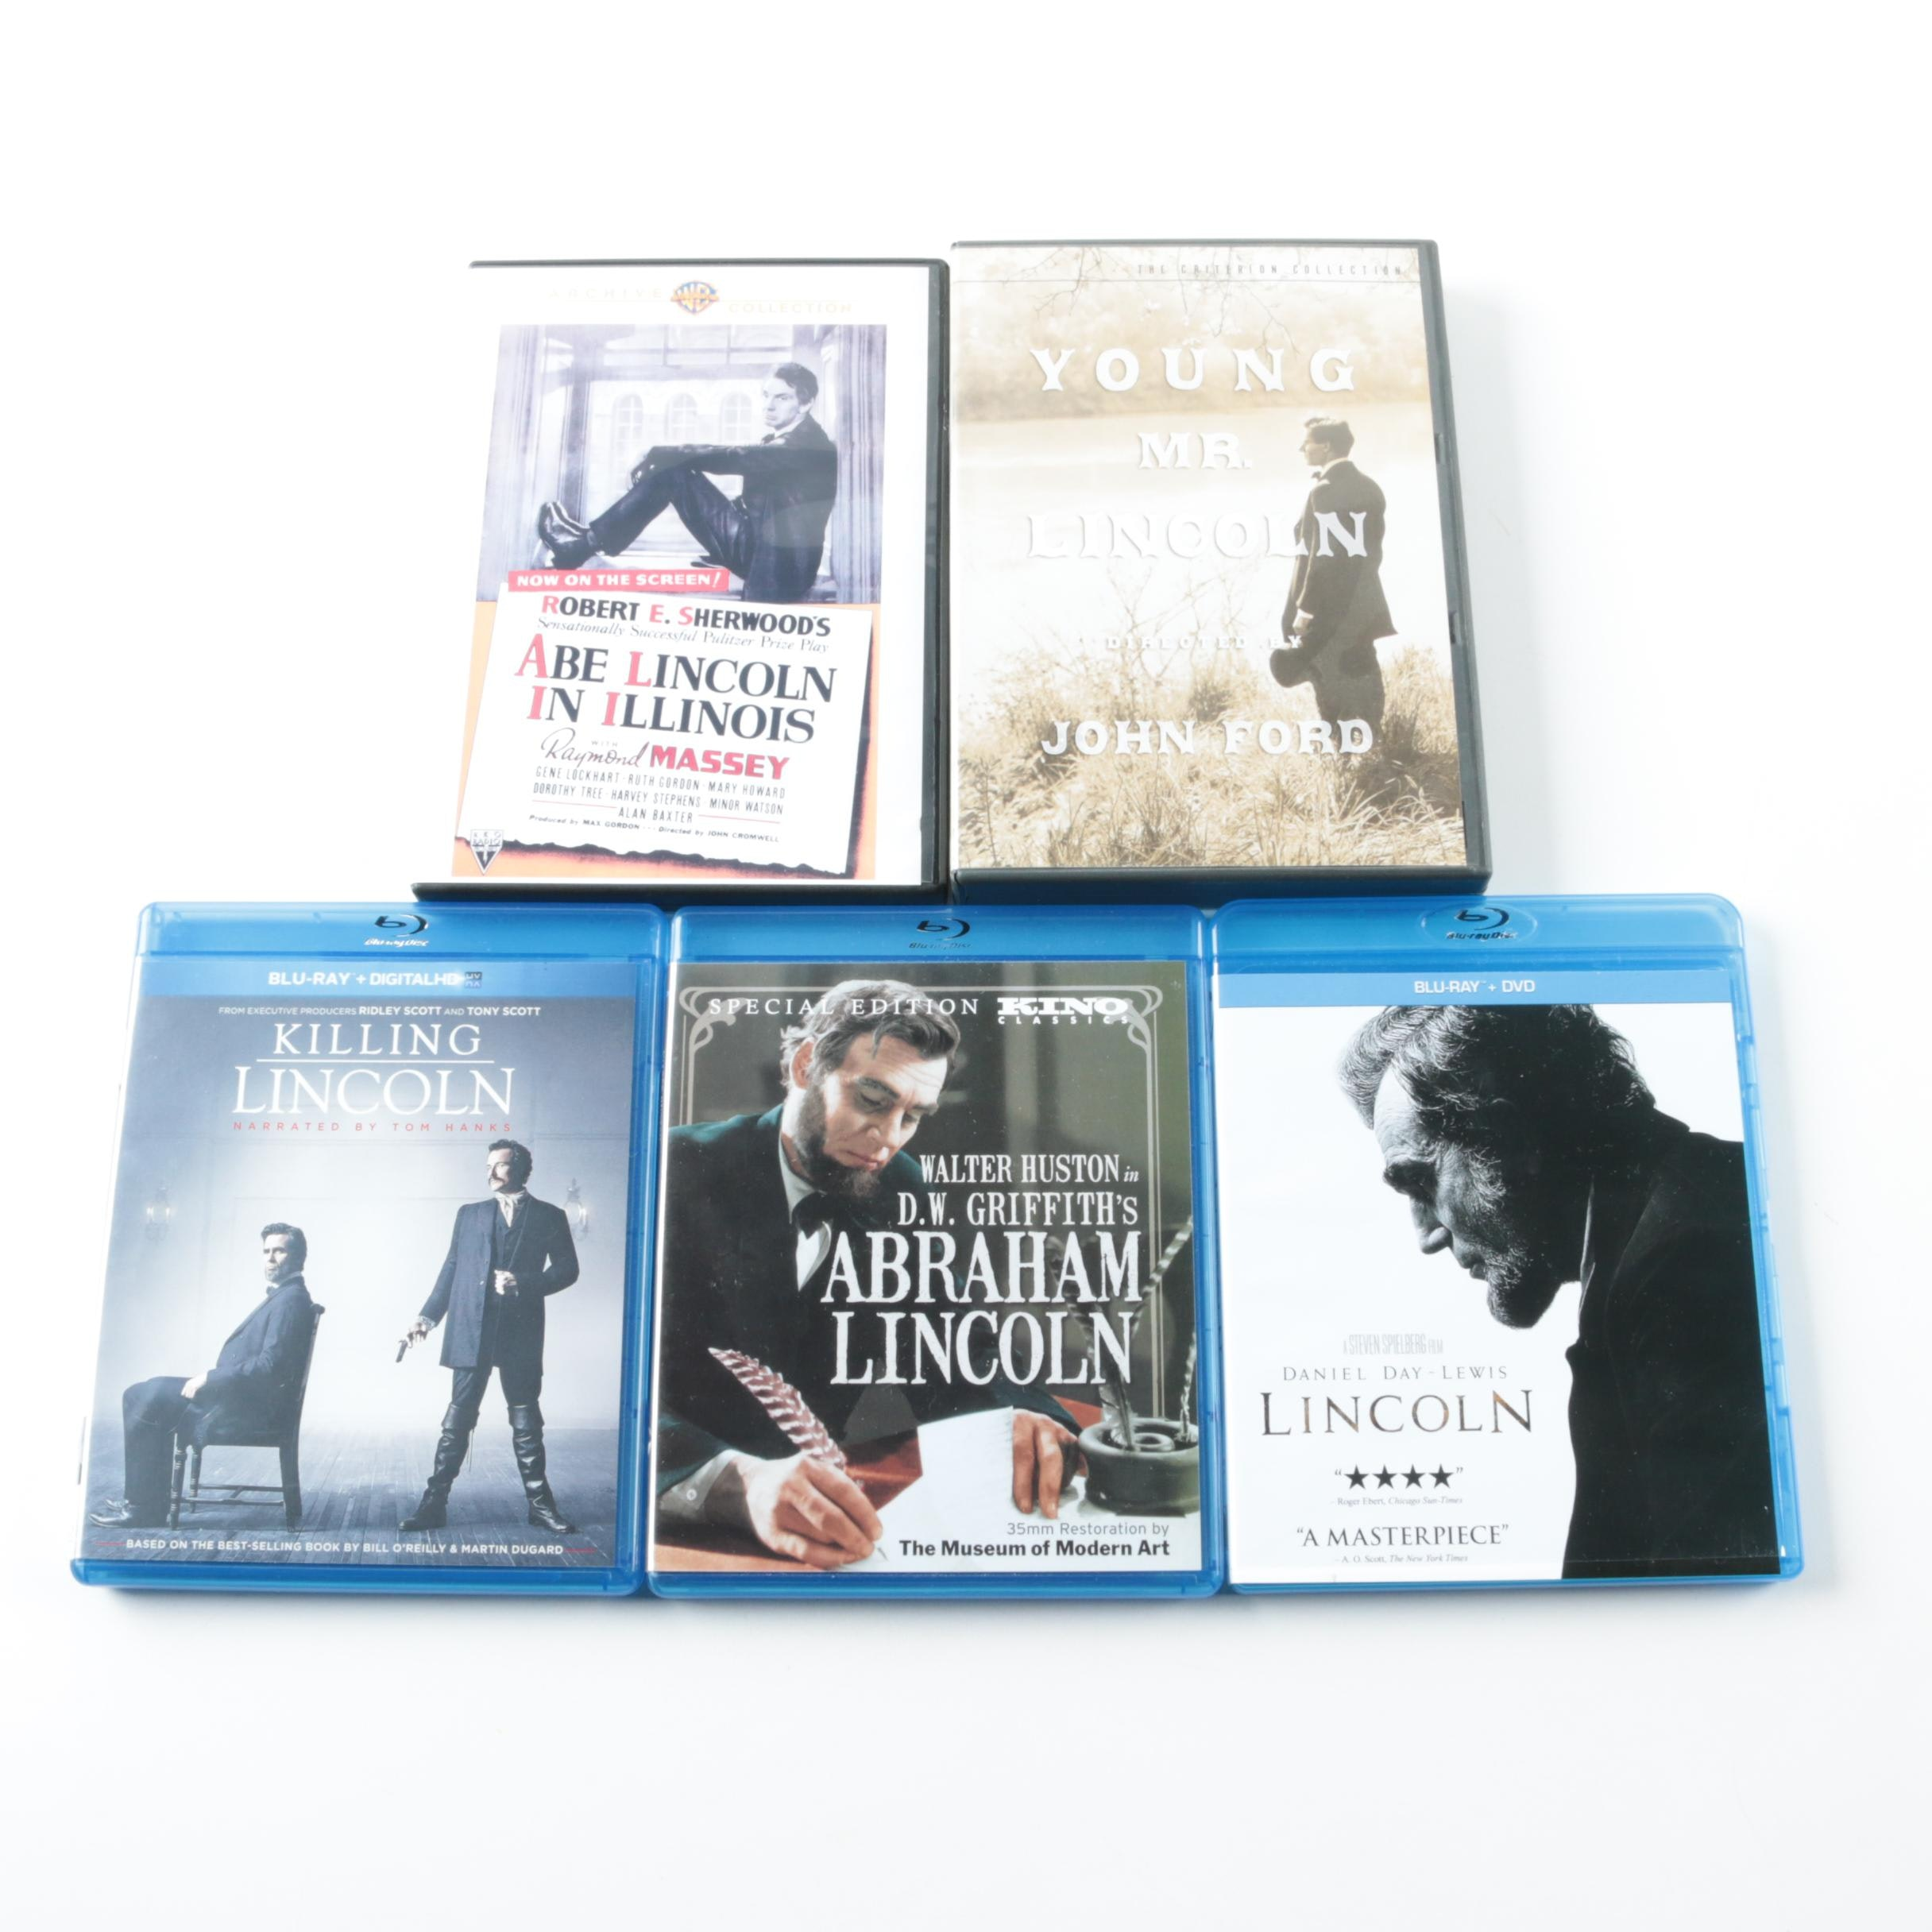 Abraham Lincoln Blu-Ray and DVDs Including Criterion Collection